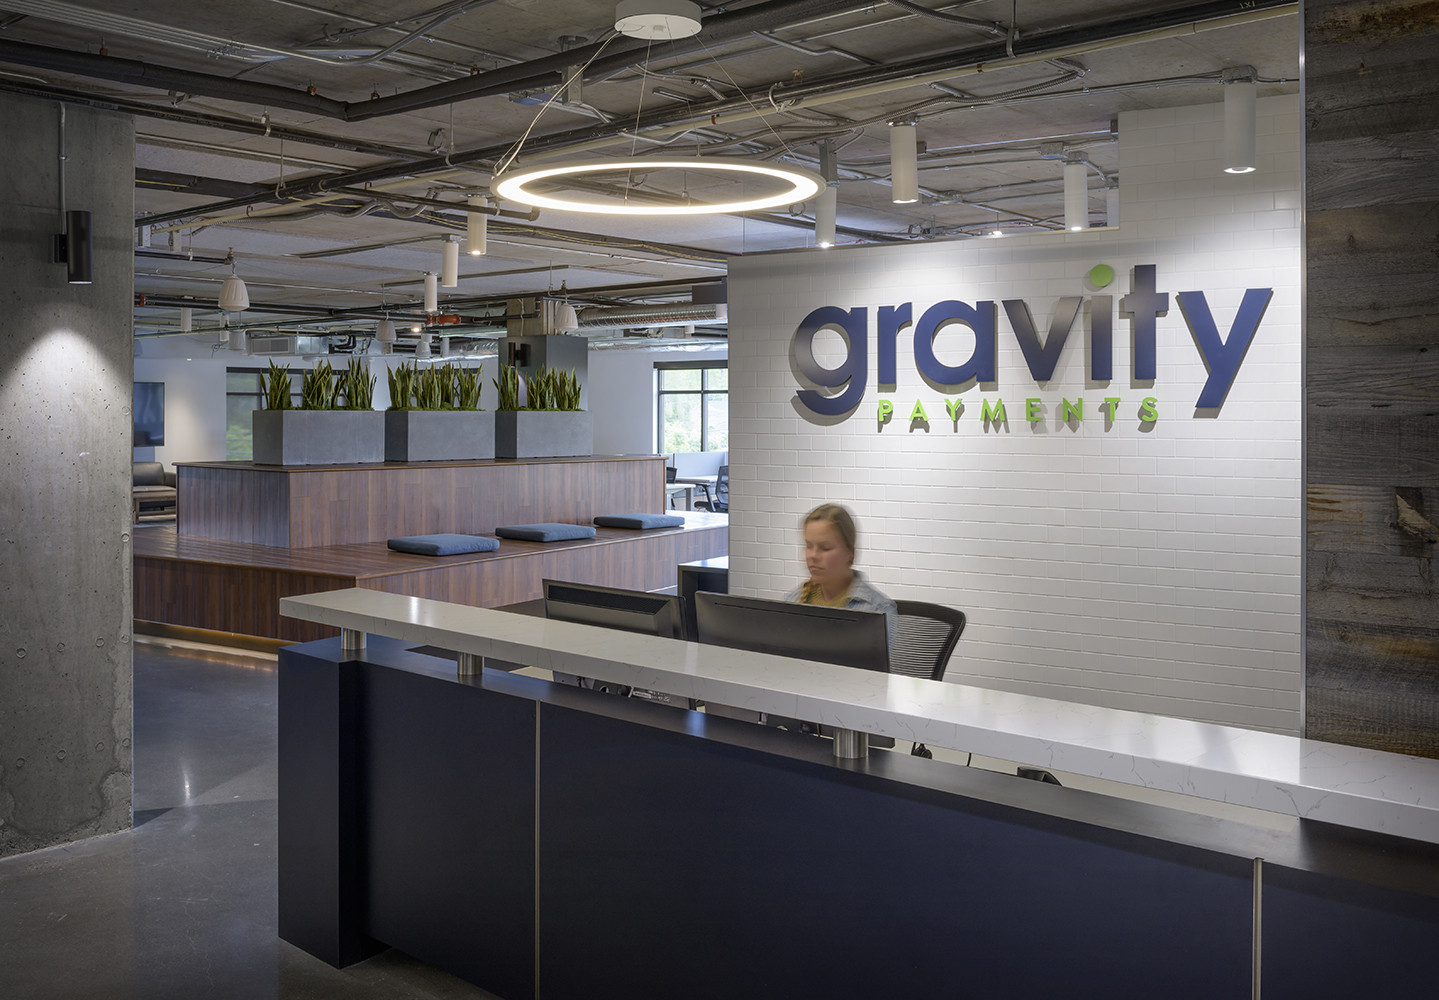 Gravity Payments image